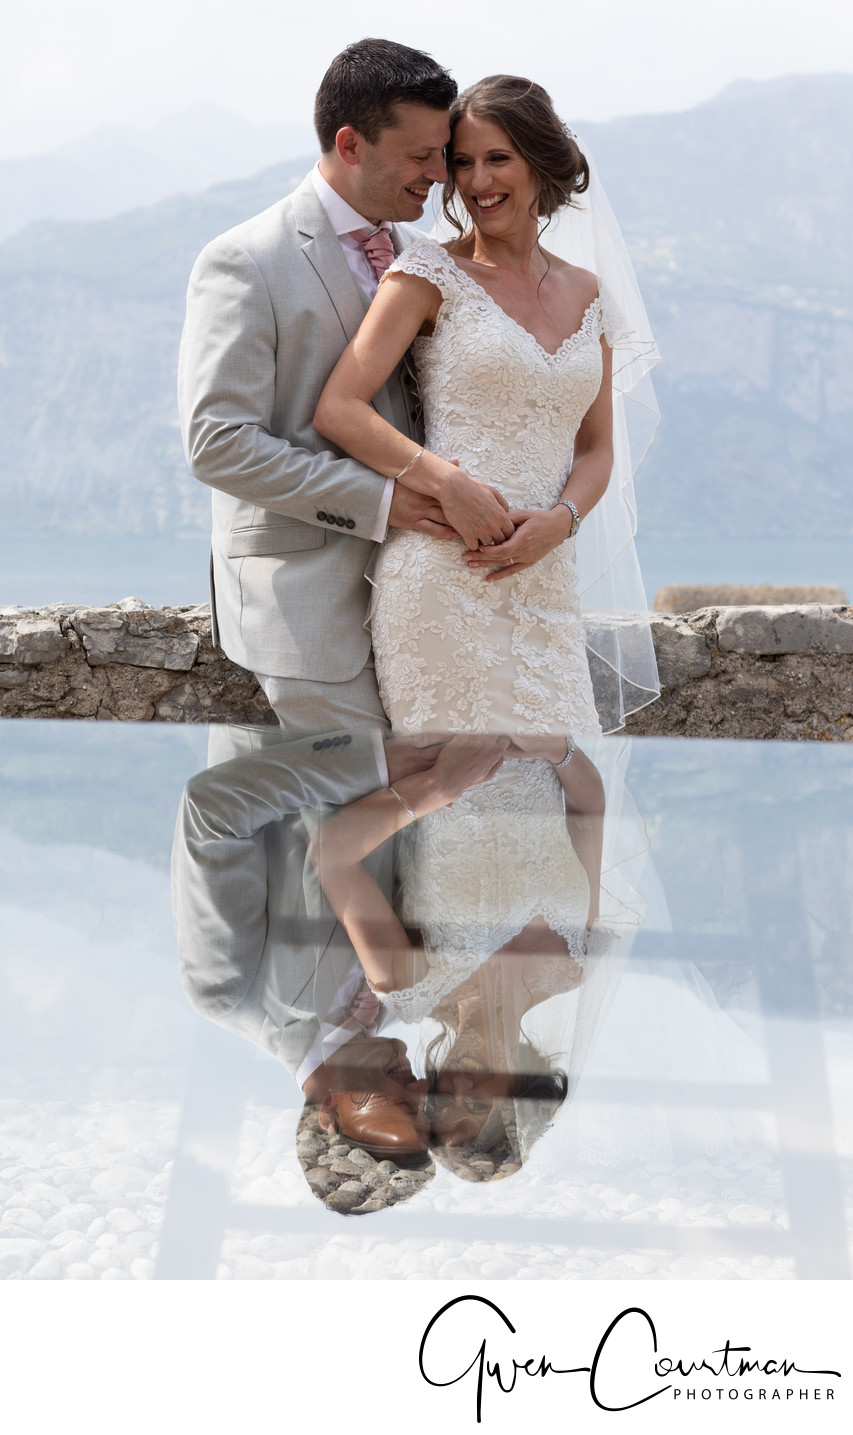 Fun, intimate moment photos, Lake Garda, Italy.